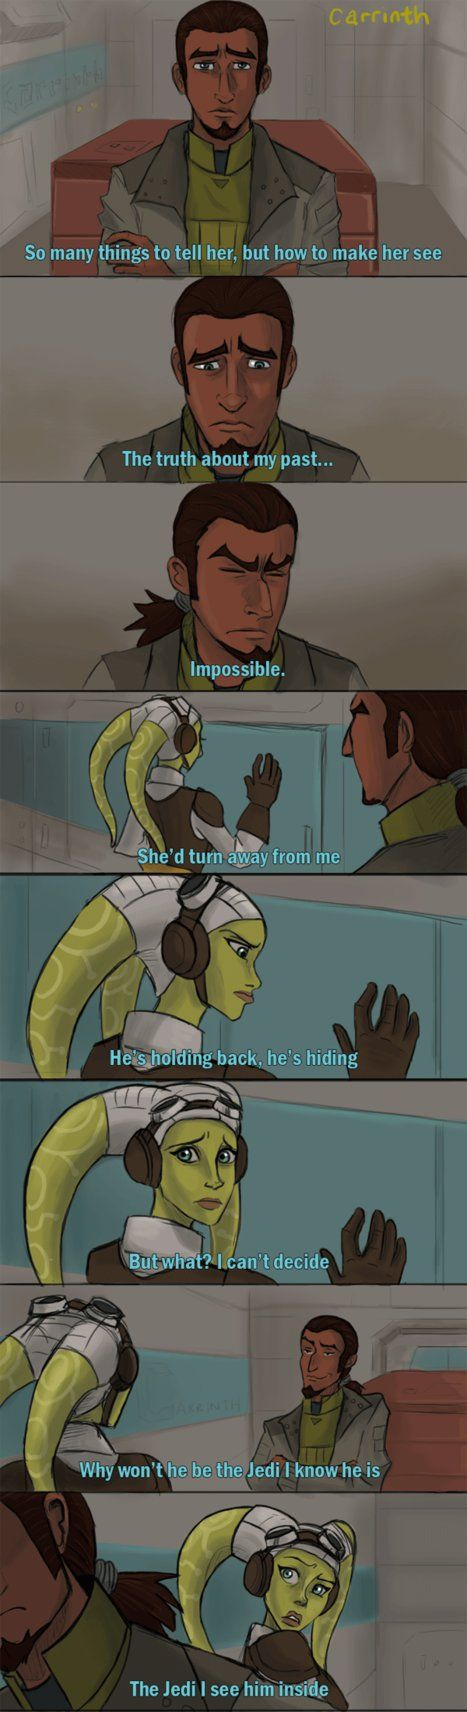 can you feel the love tonight. I bet that this is exactly how their relationship was early on. Now I think Hera knows the majority of Kanan's past.